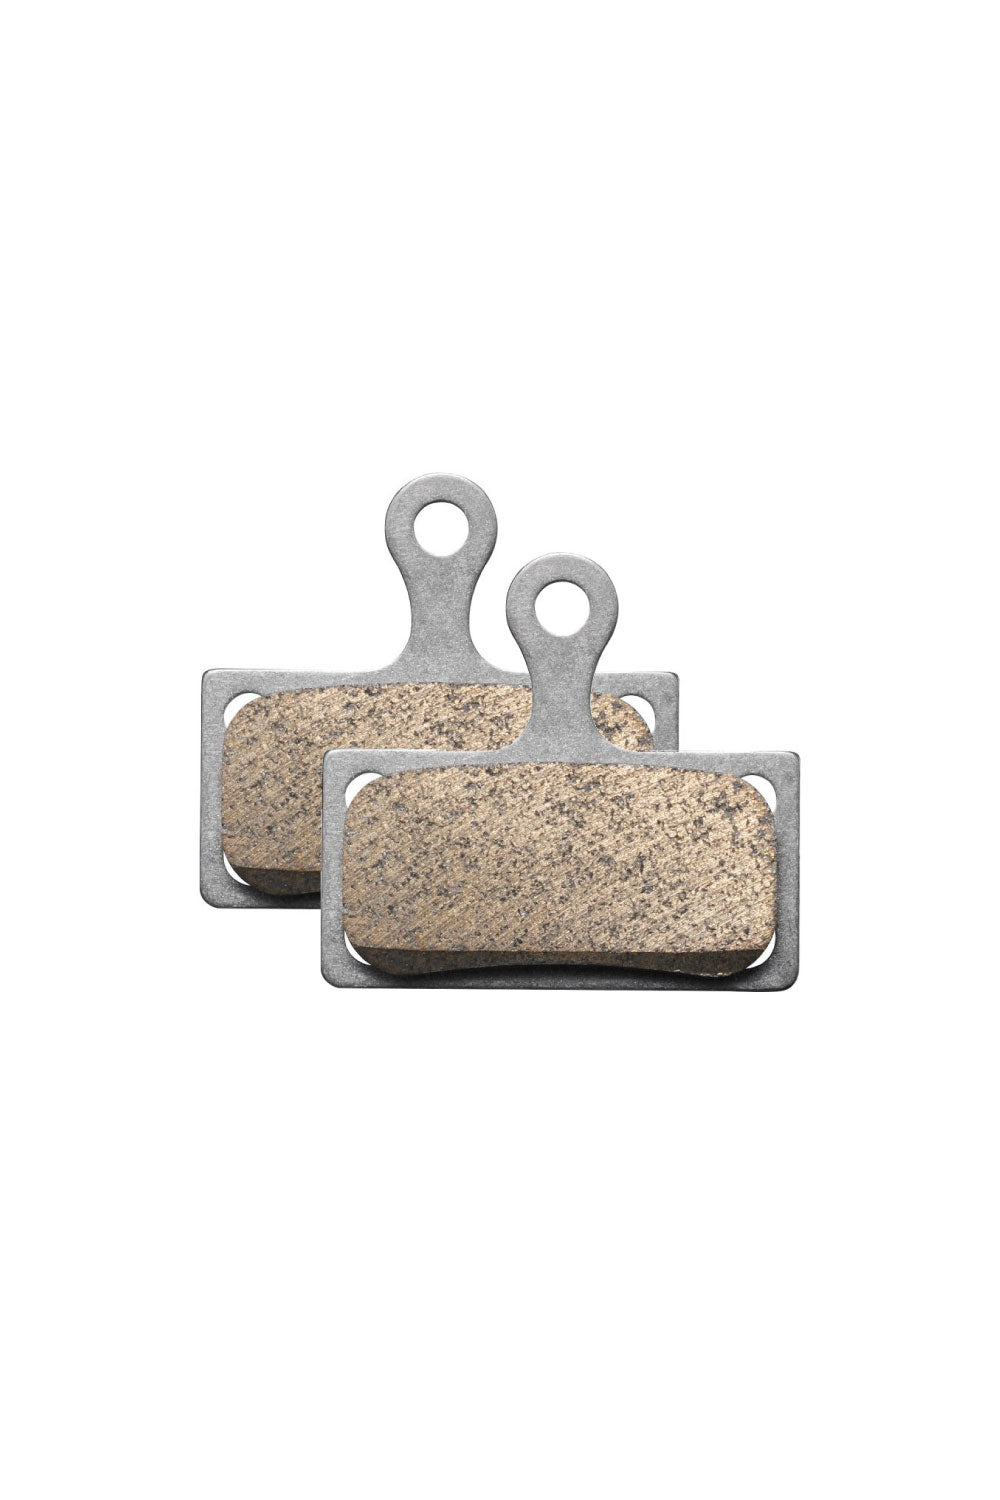 SHIMANO G03A DEORE RESIN BRAKE PADS DISC